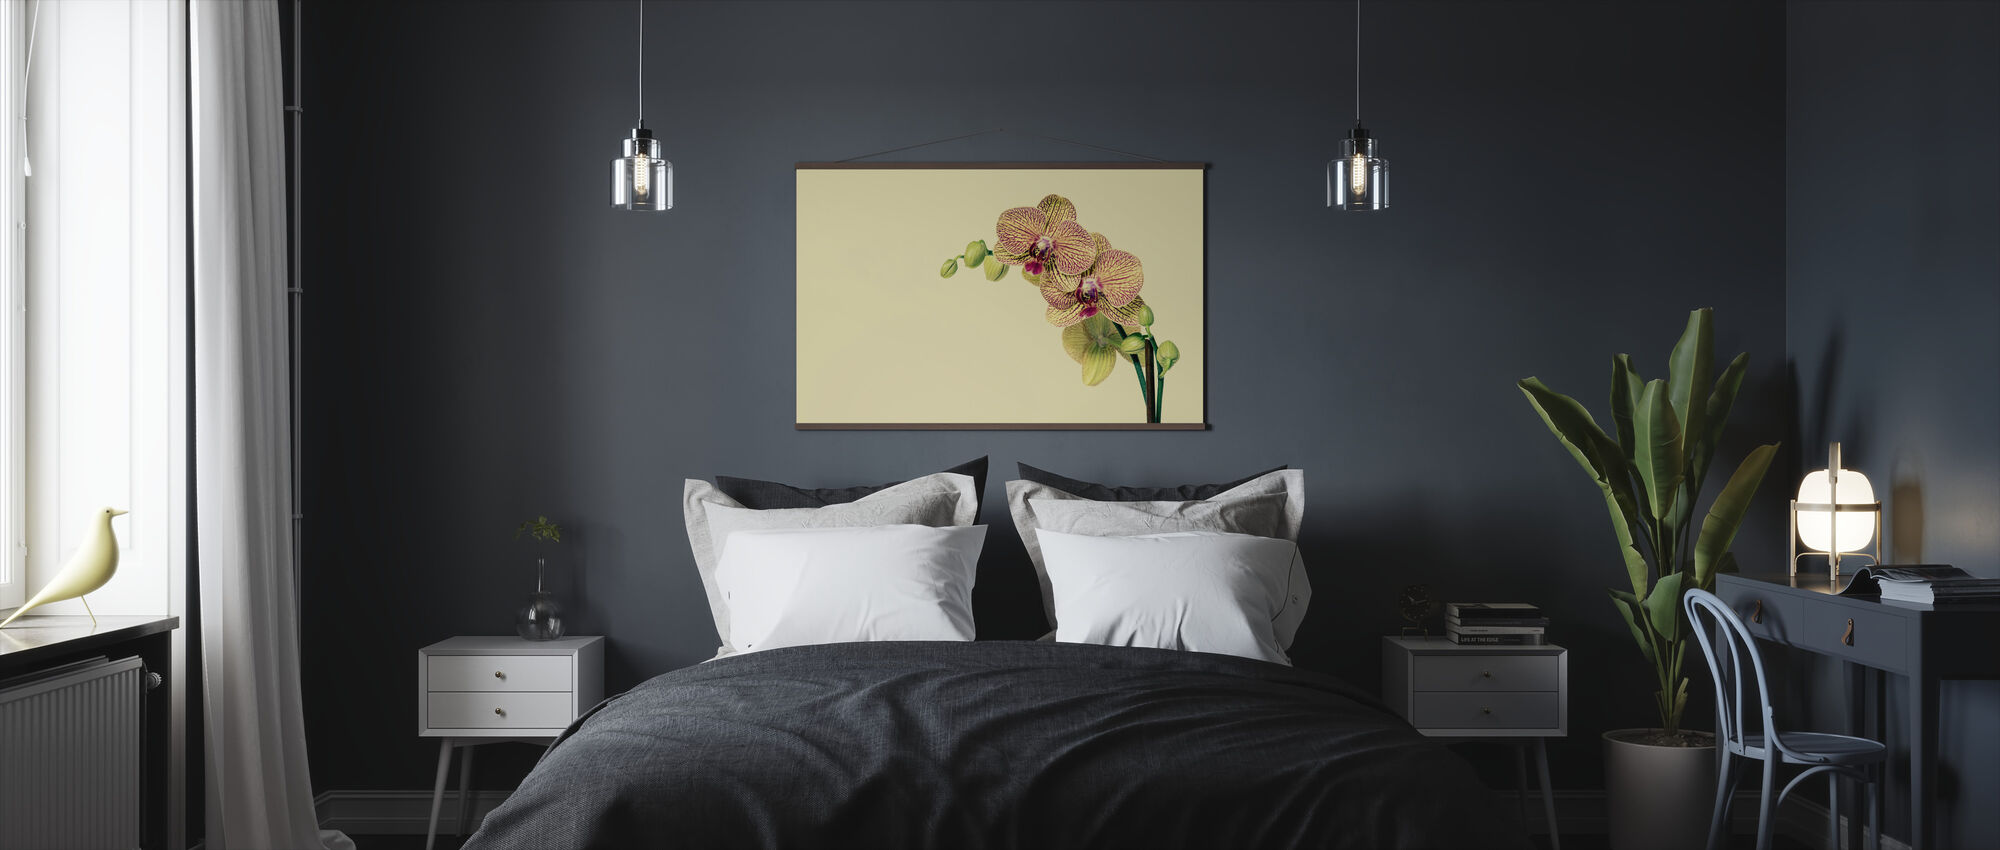 Pale Orchid - Poster - Bedroom